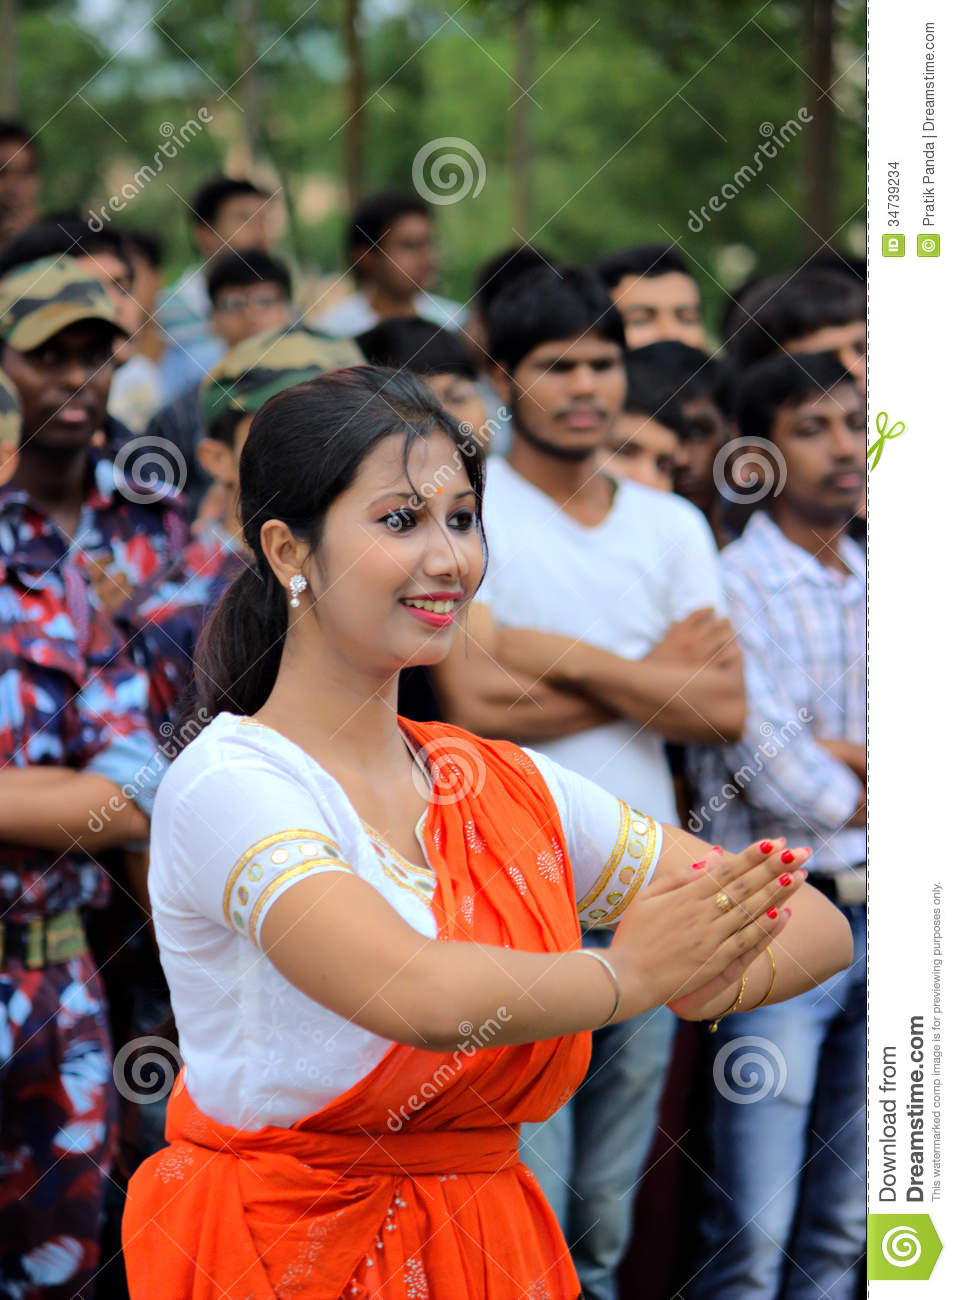 Indian Independence Day Celebration Editorial Stock Image -9958